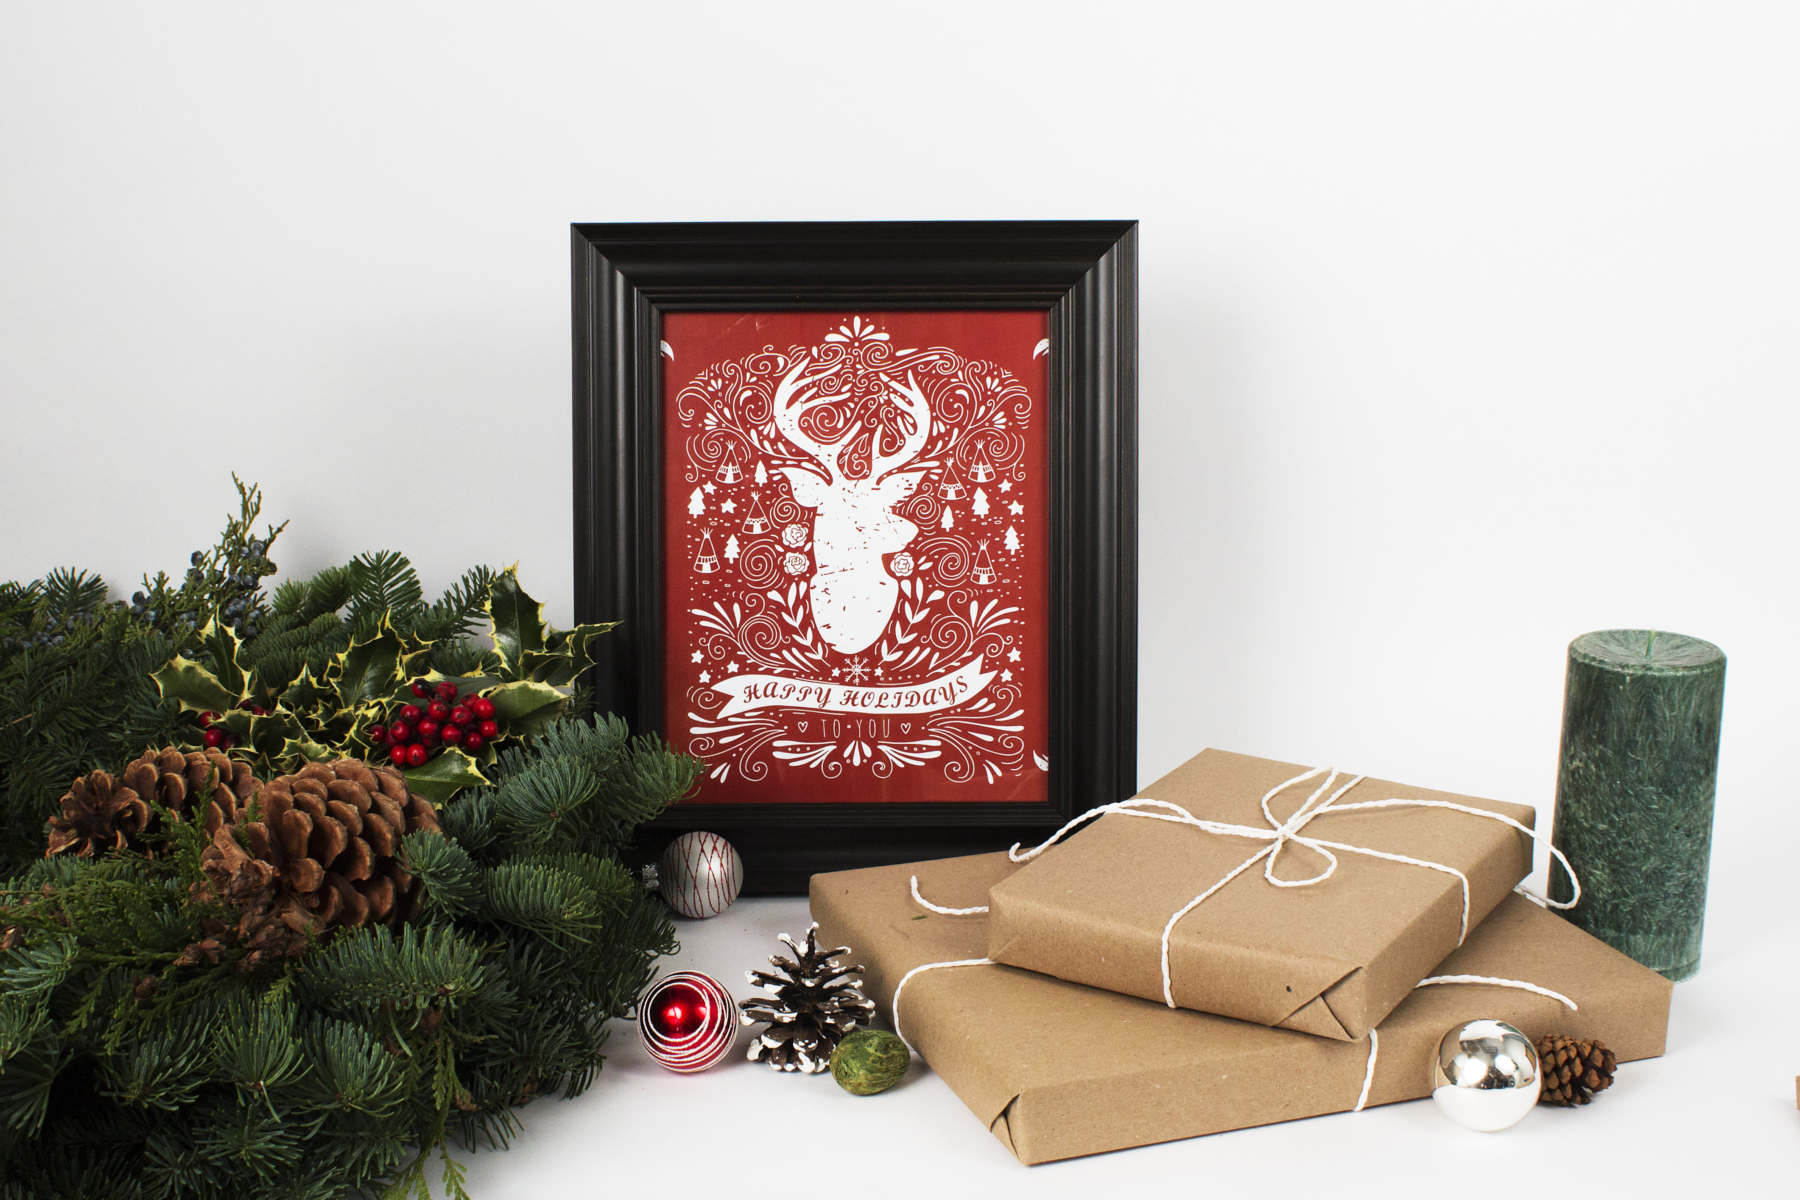 Christmas framed photos